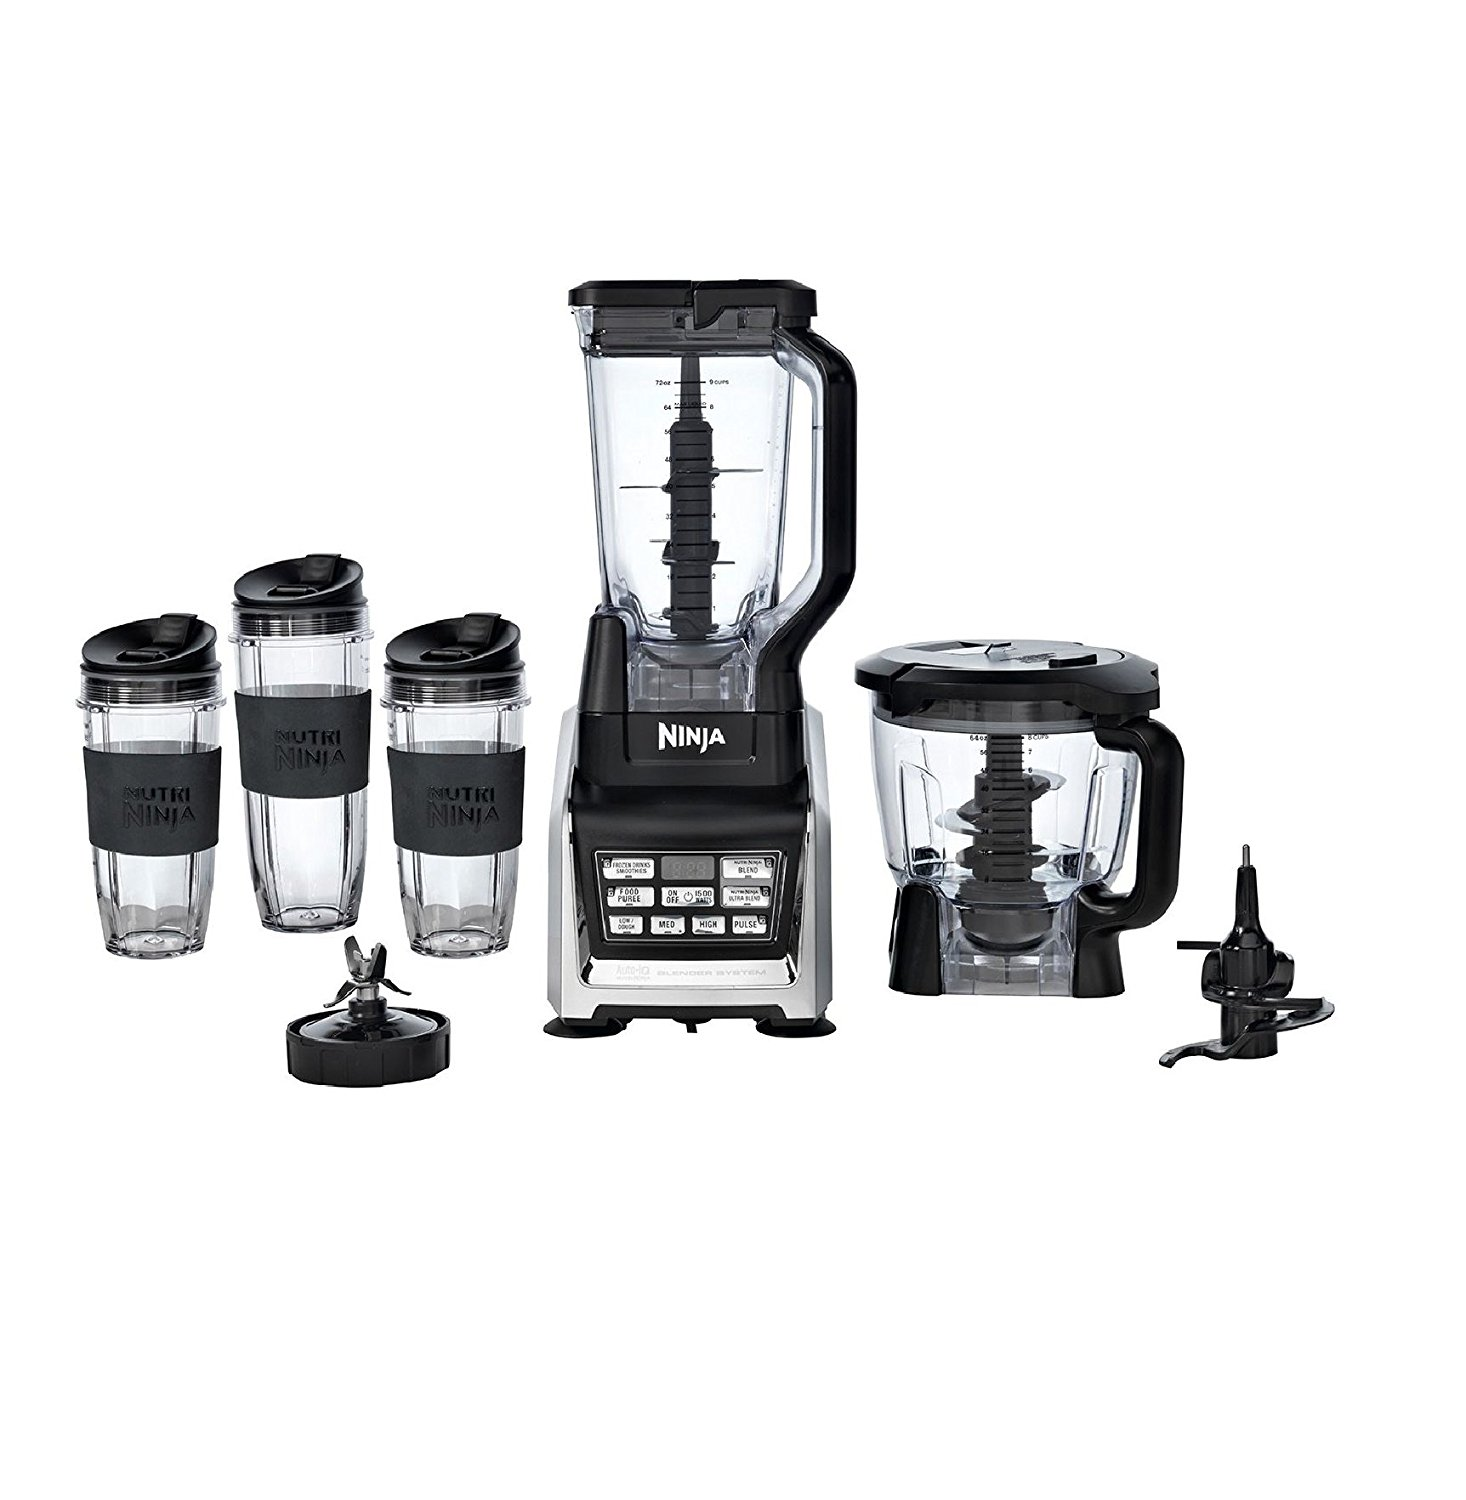 Top Rated Ninja Blender